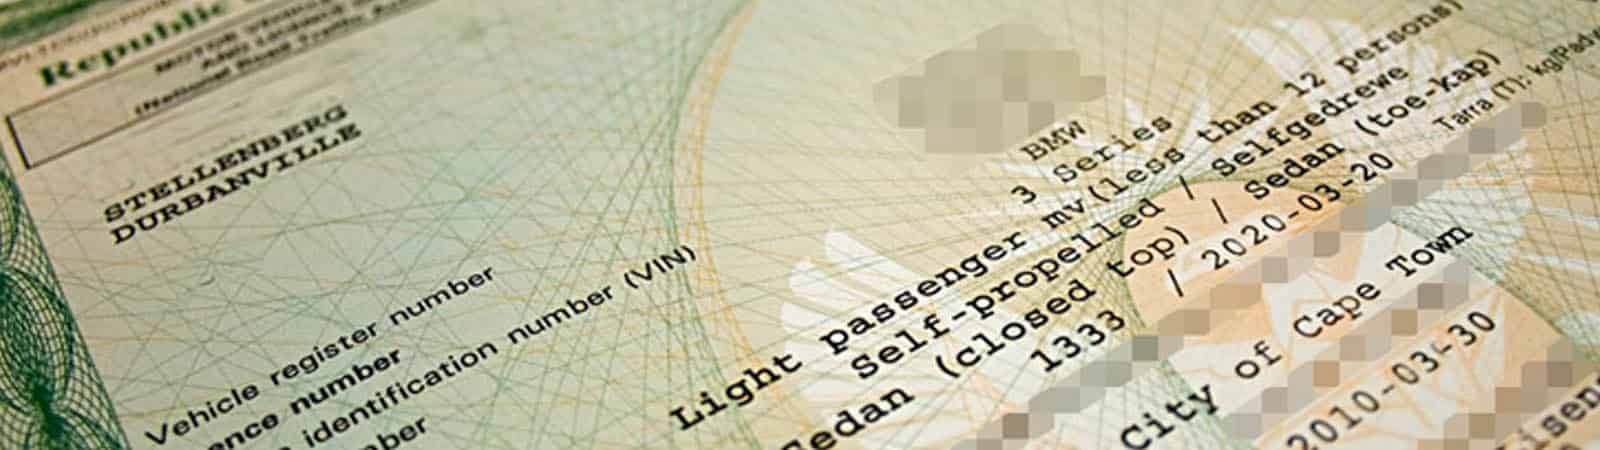 Fastlane-Vehicle-Licensing-Services-forms-view-or-download-image